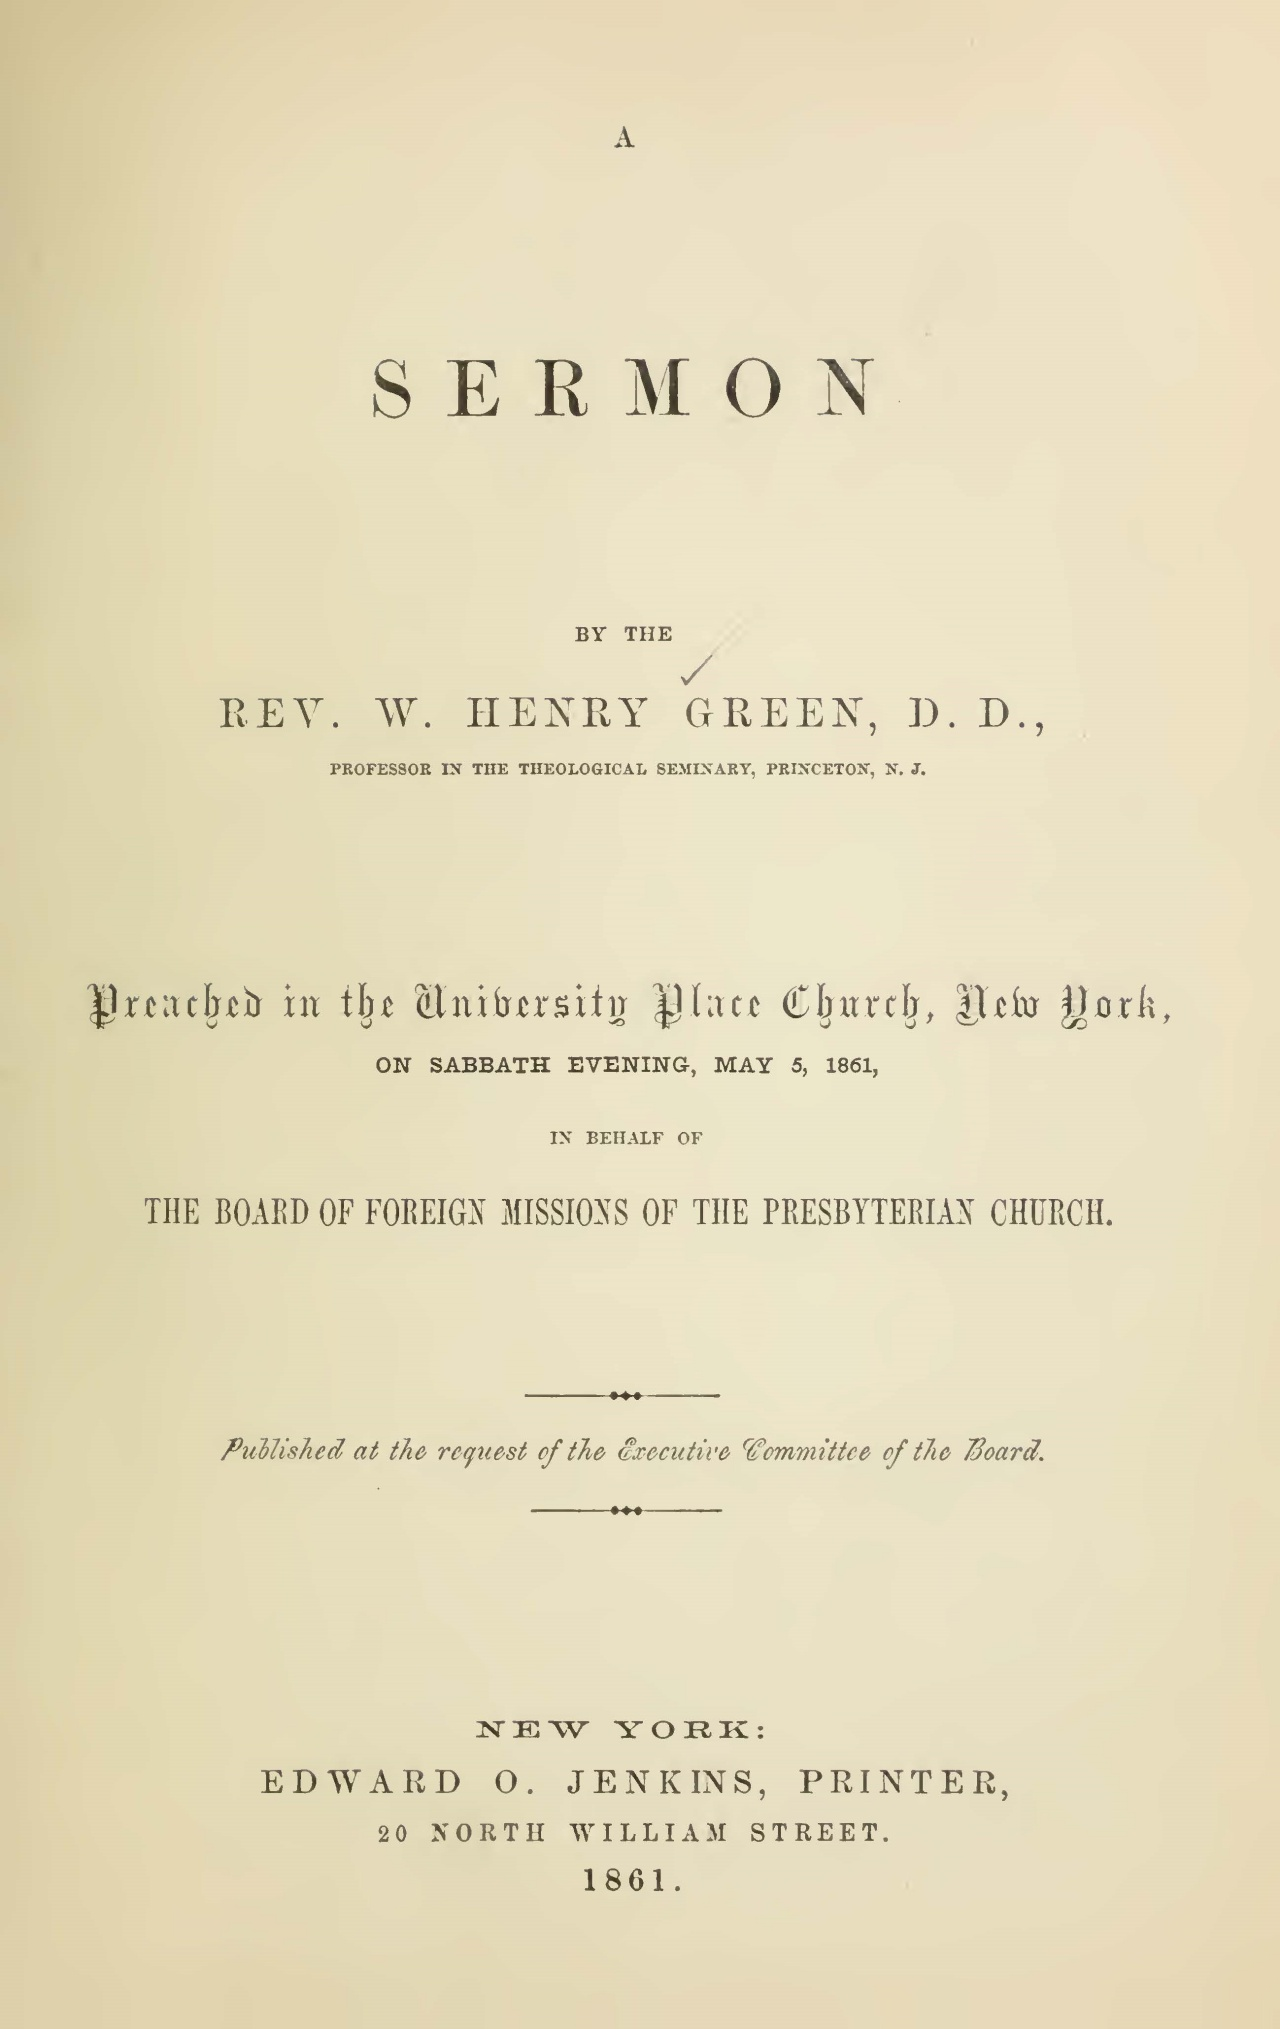 Green, William Henry, A Sermon Preached May 5, 1861 Title Page.jpg